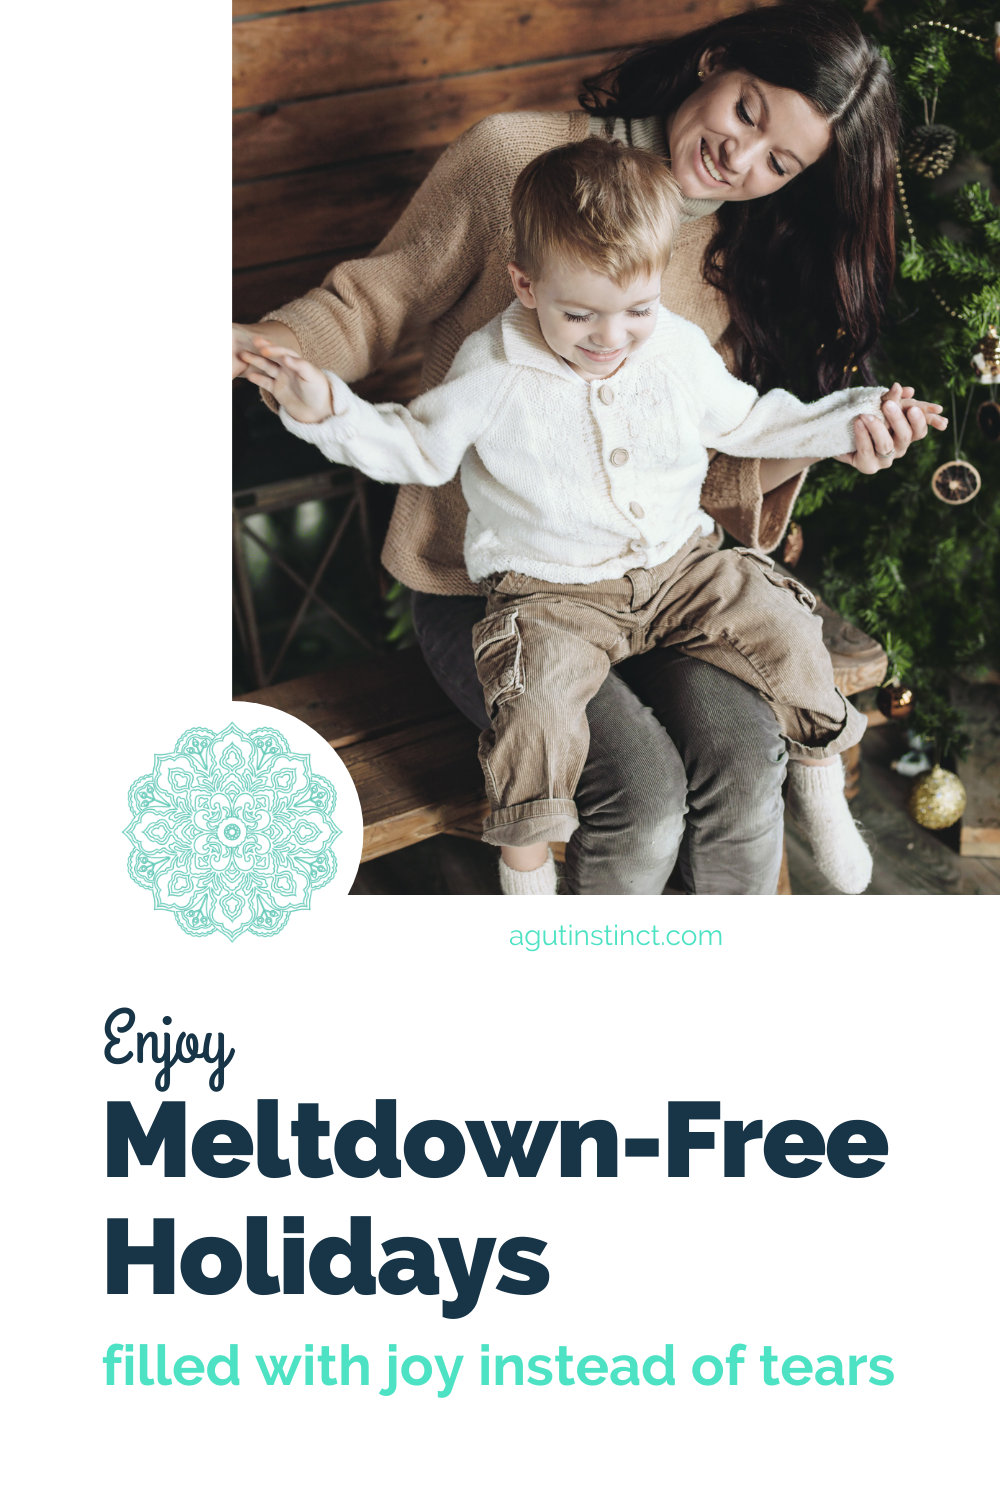 photo of a woman with her son on her lap, siting next to a Christmas tree and both are smiling, representing a happy, tantrum-free and meltdown-free holiday experience